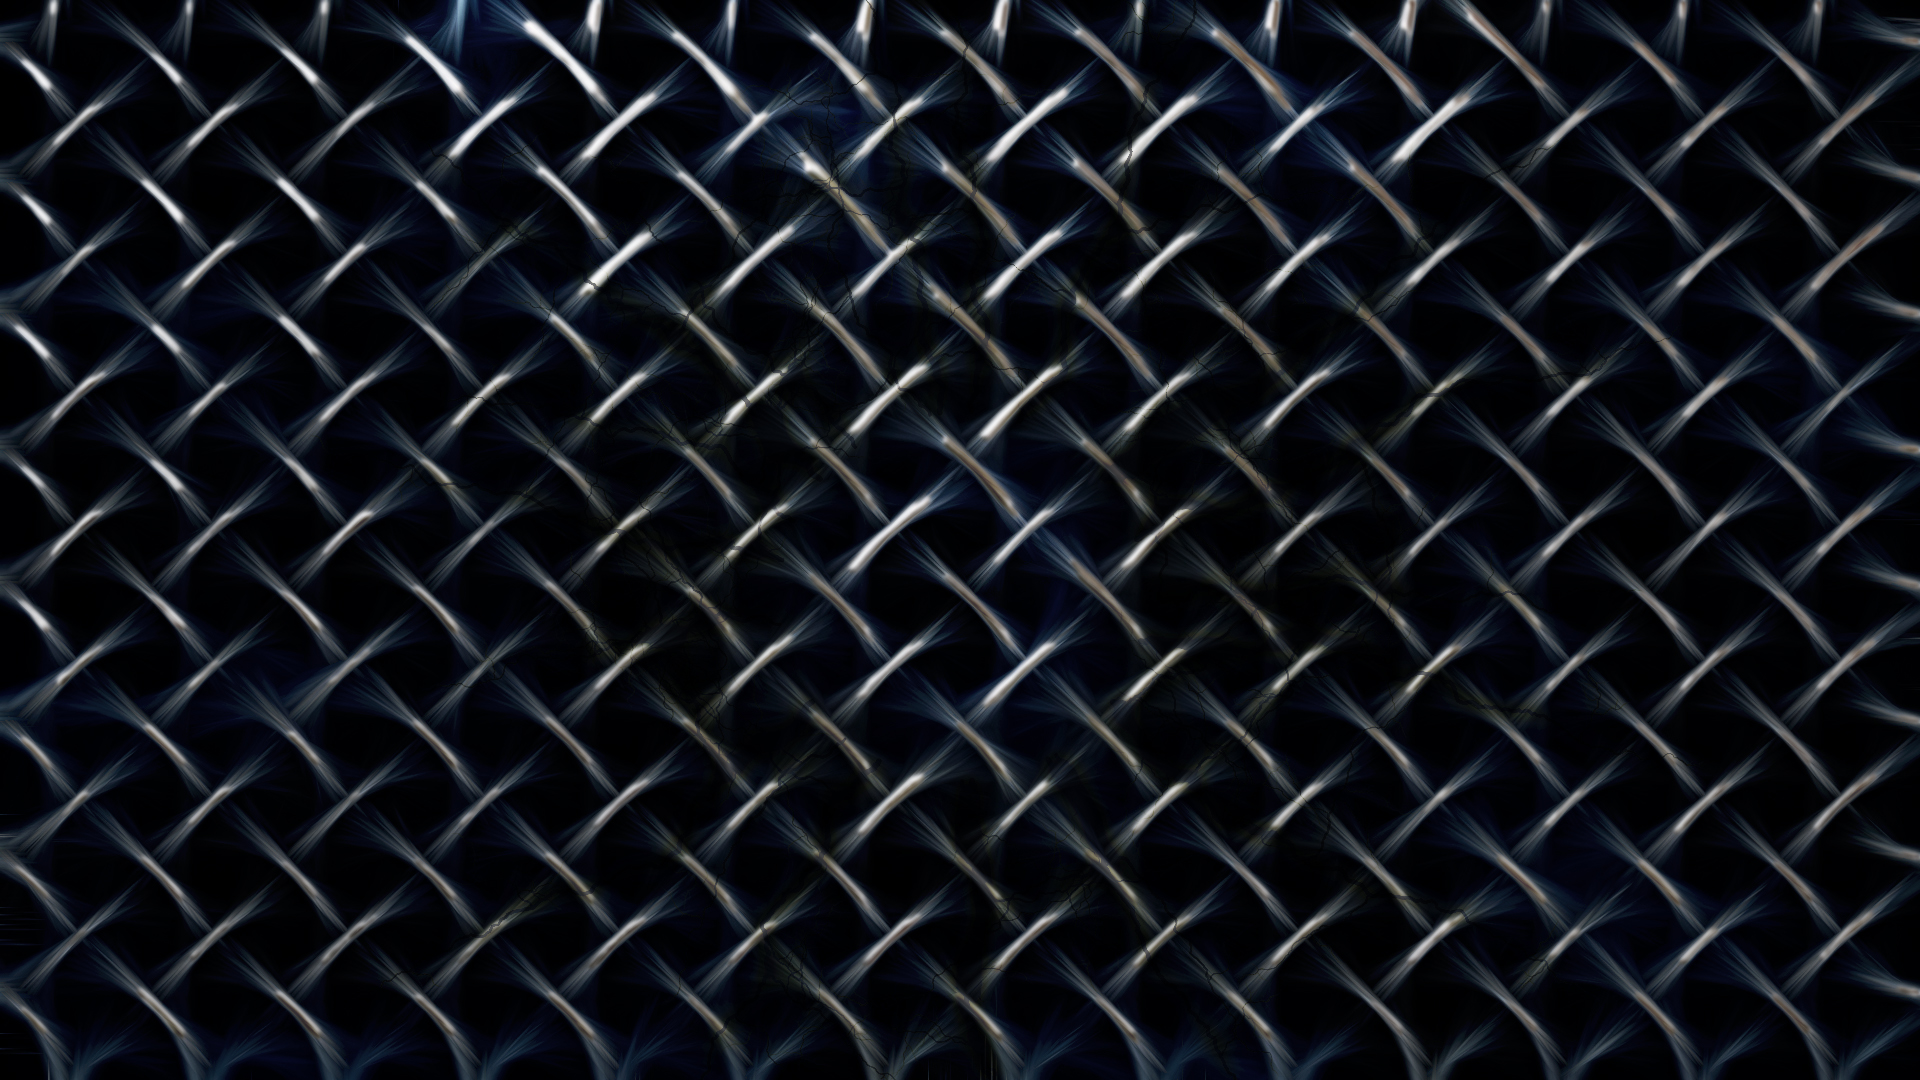 ... RS TEXTURES: DE-FENCE-SIVE by CSuk-1T